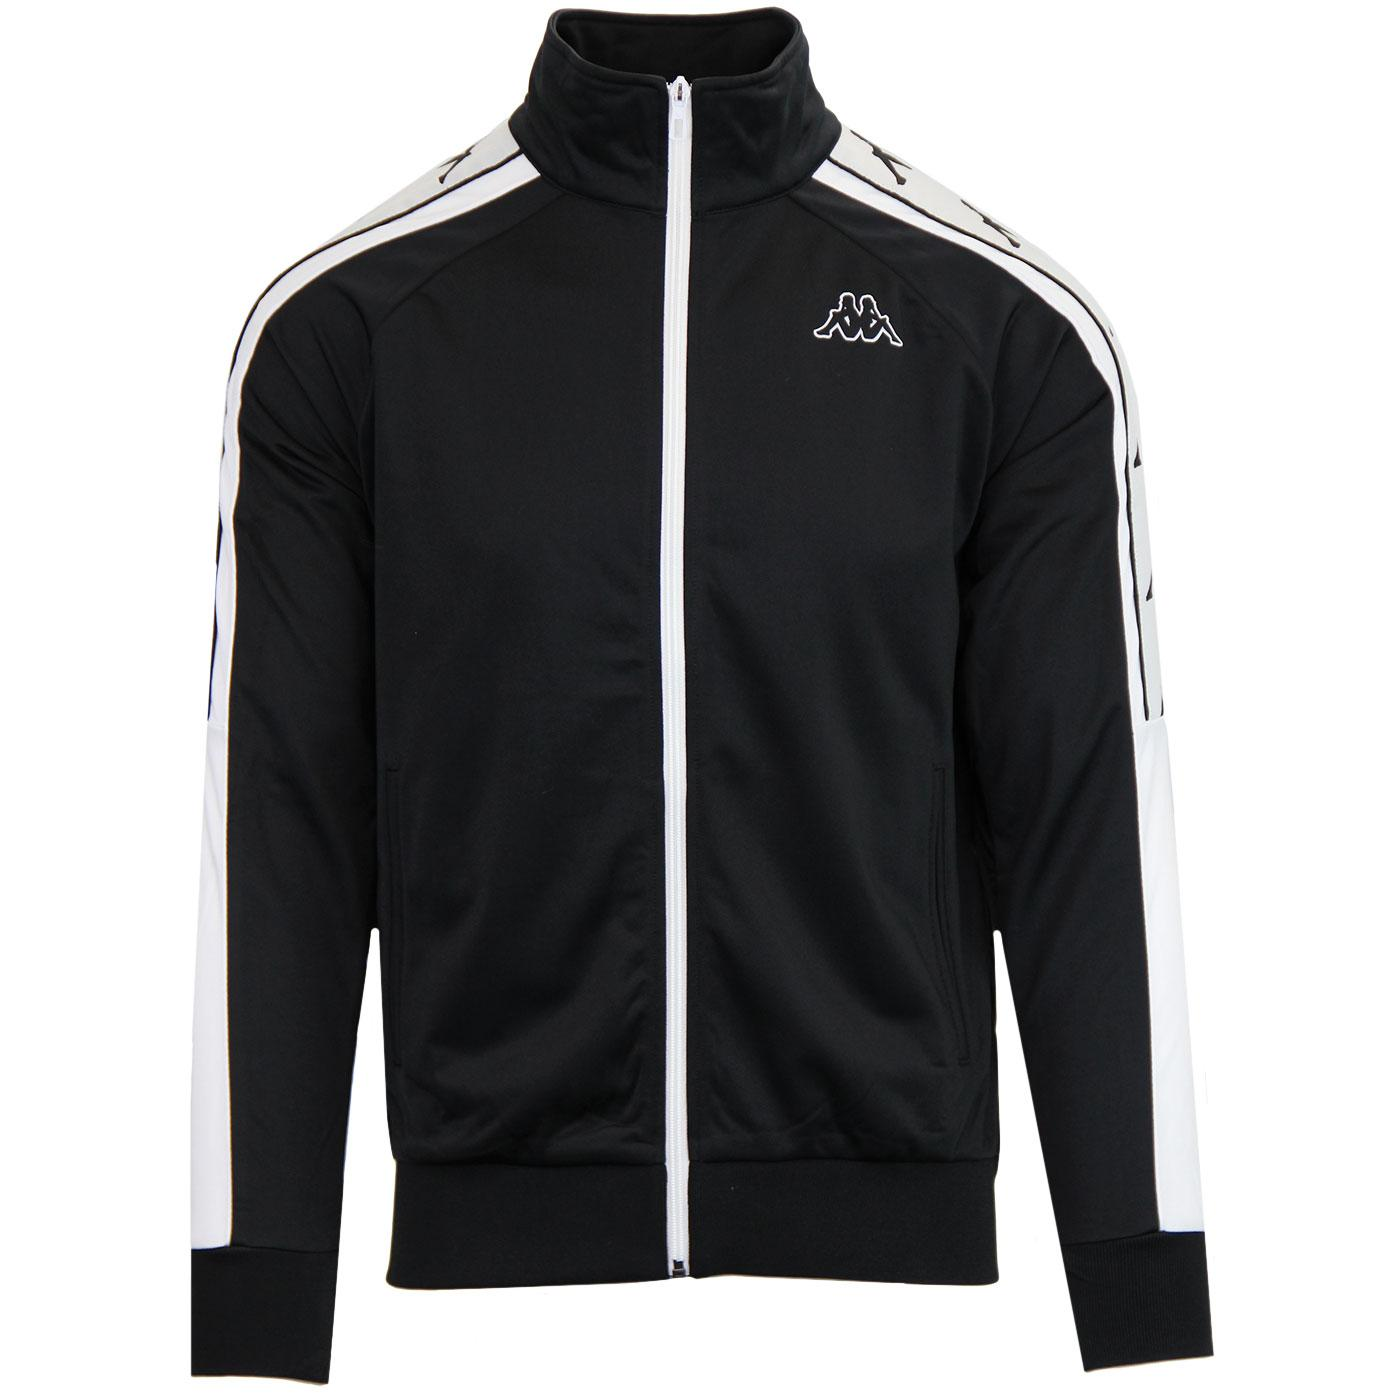 Banda Ahran KAPPA Retro Track Jacket (Black/White)